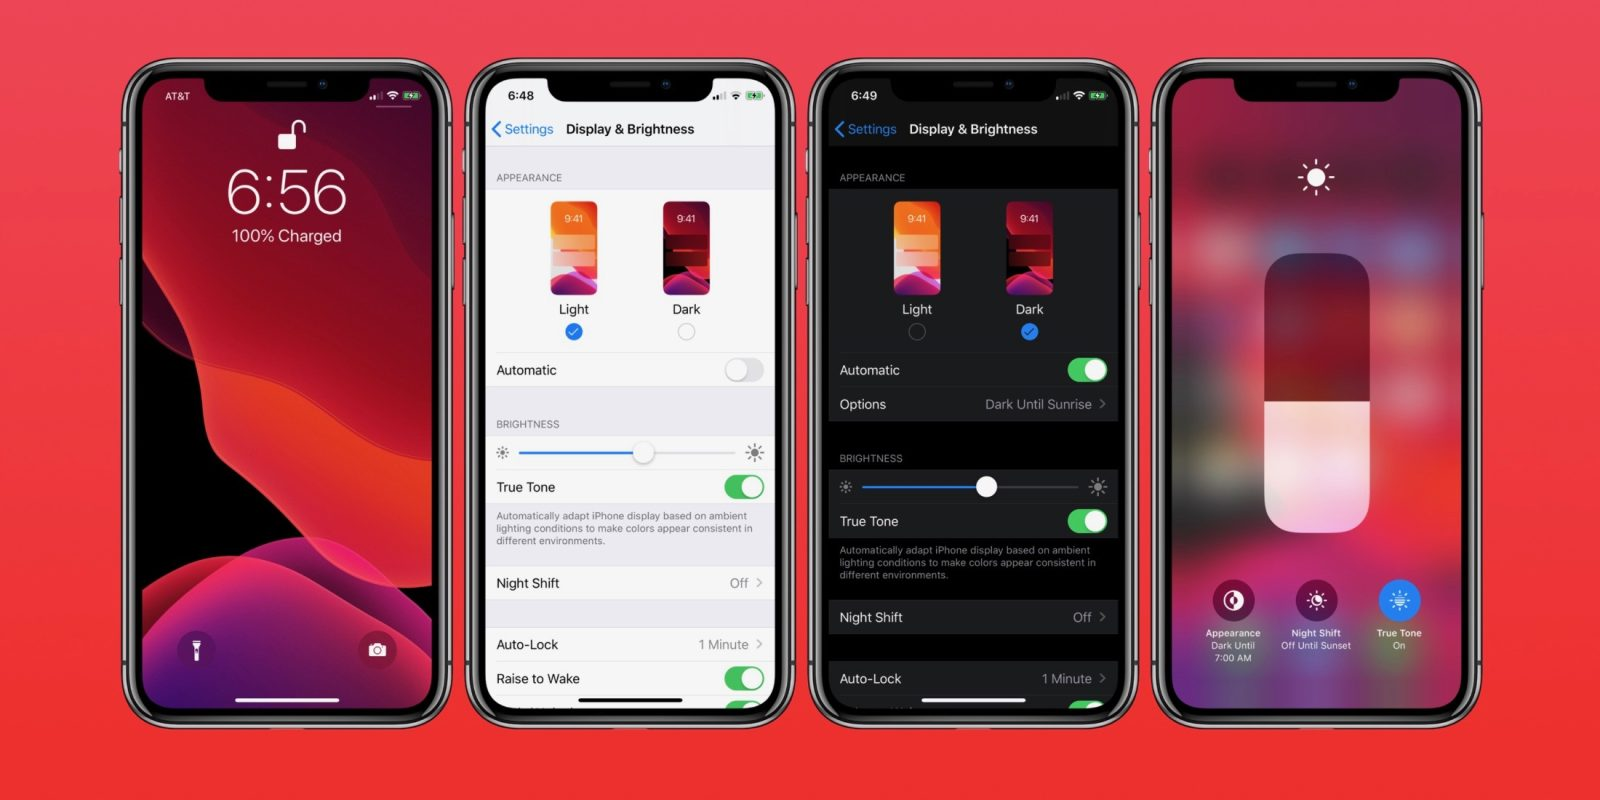 How to Enable Dark Mode on iPhone or iPad